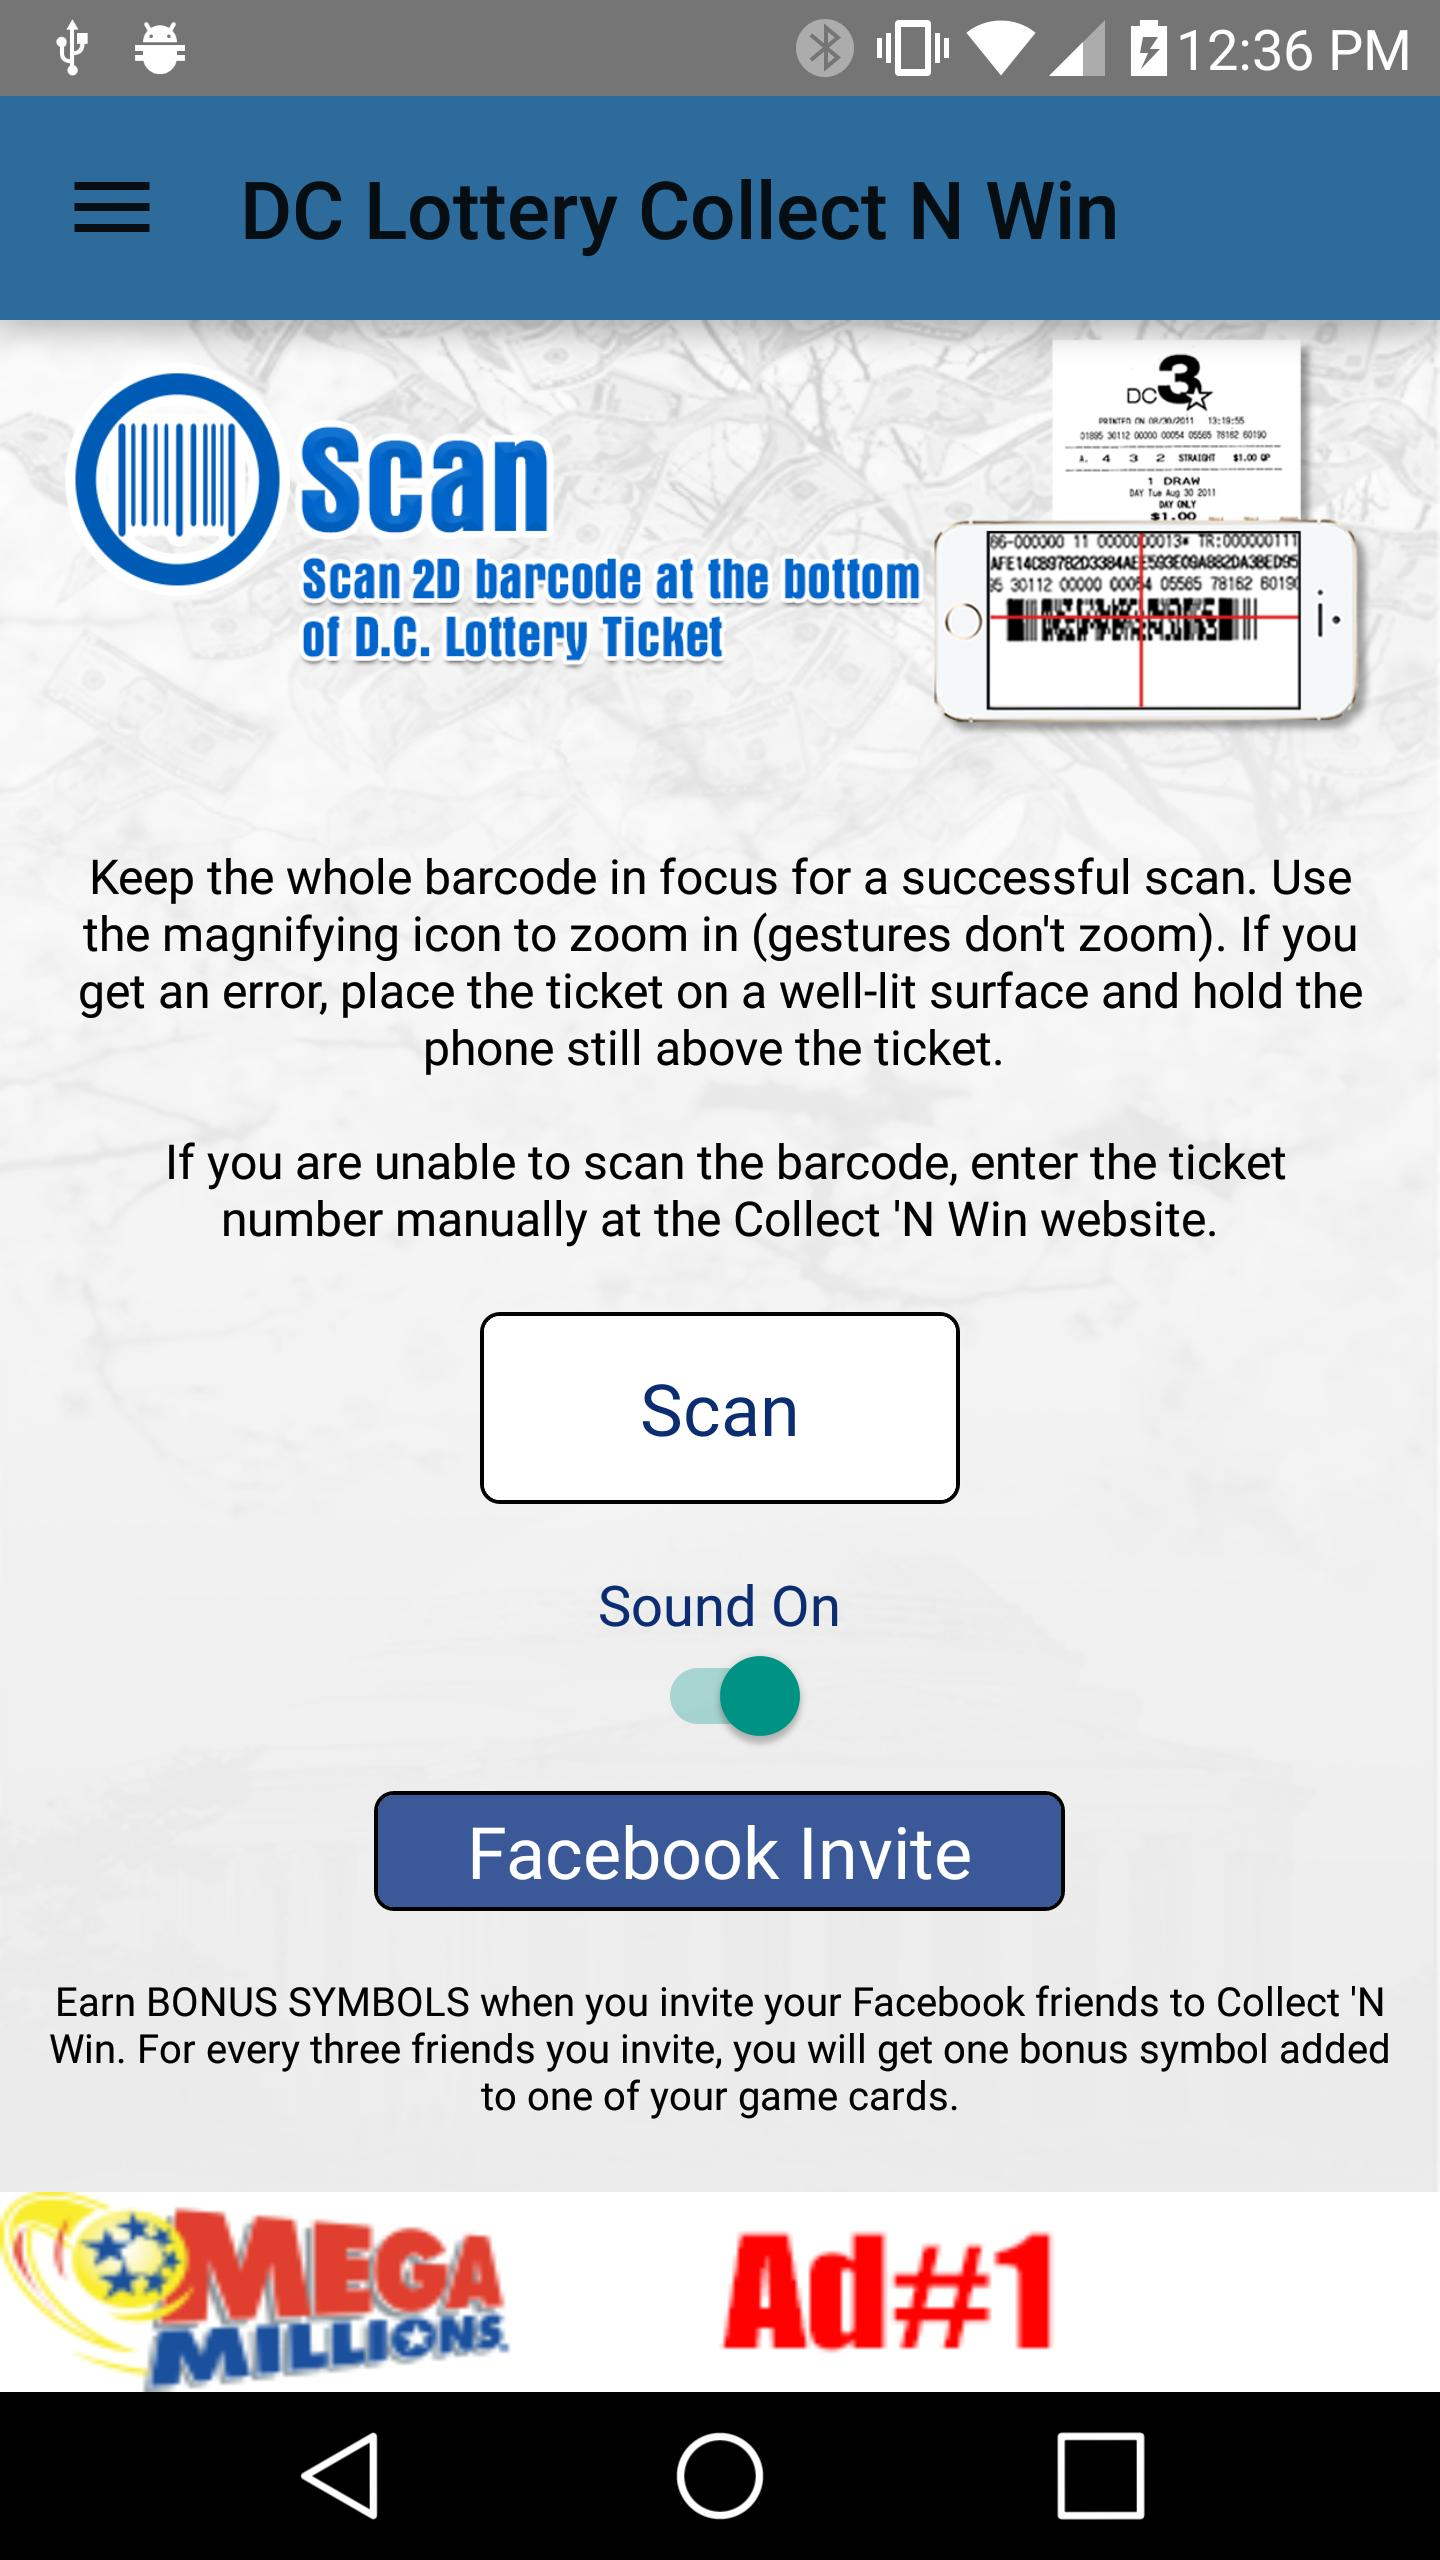 DC Lottery Collect 'N Win for Android - APK Download